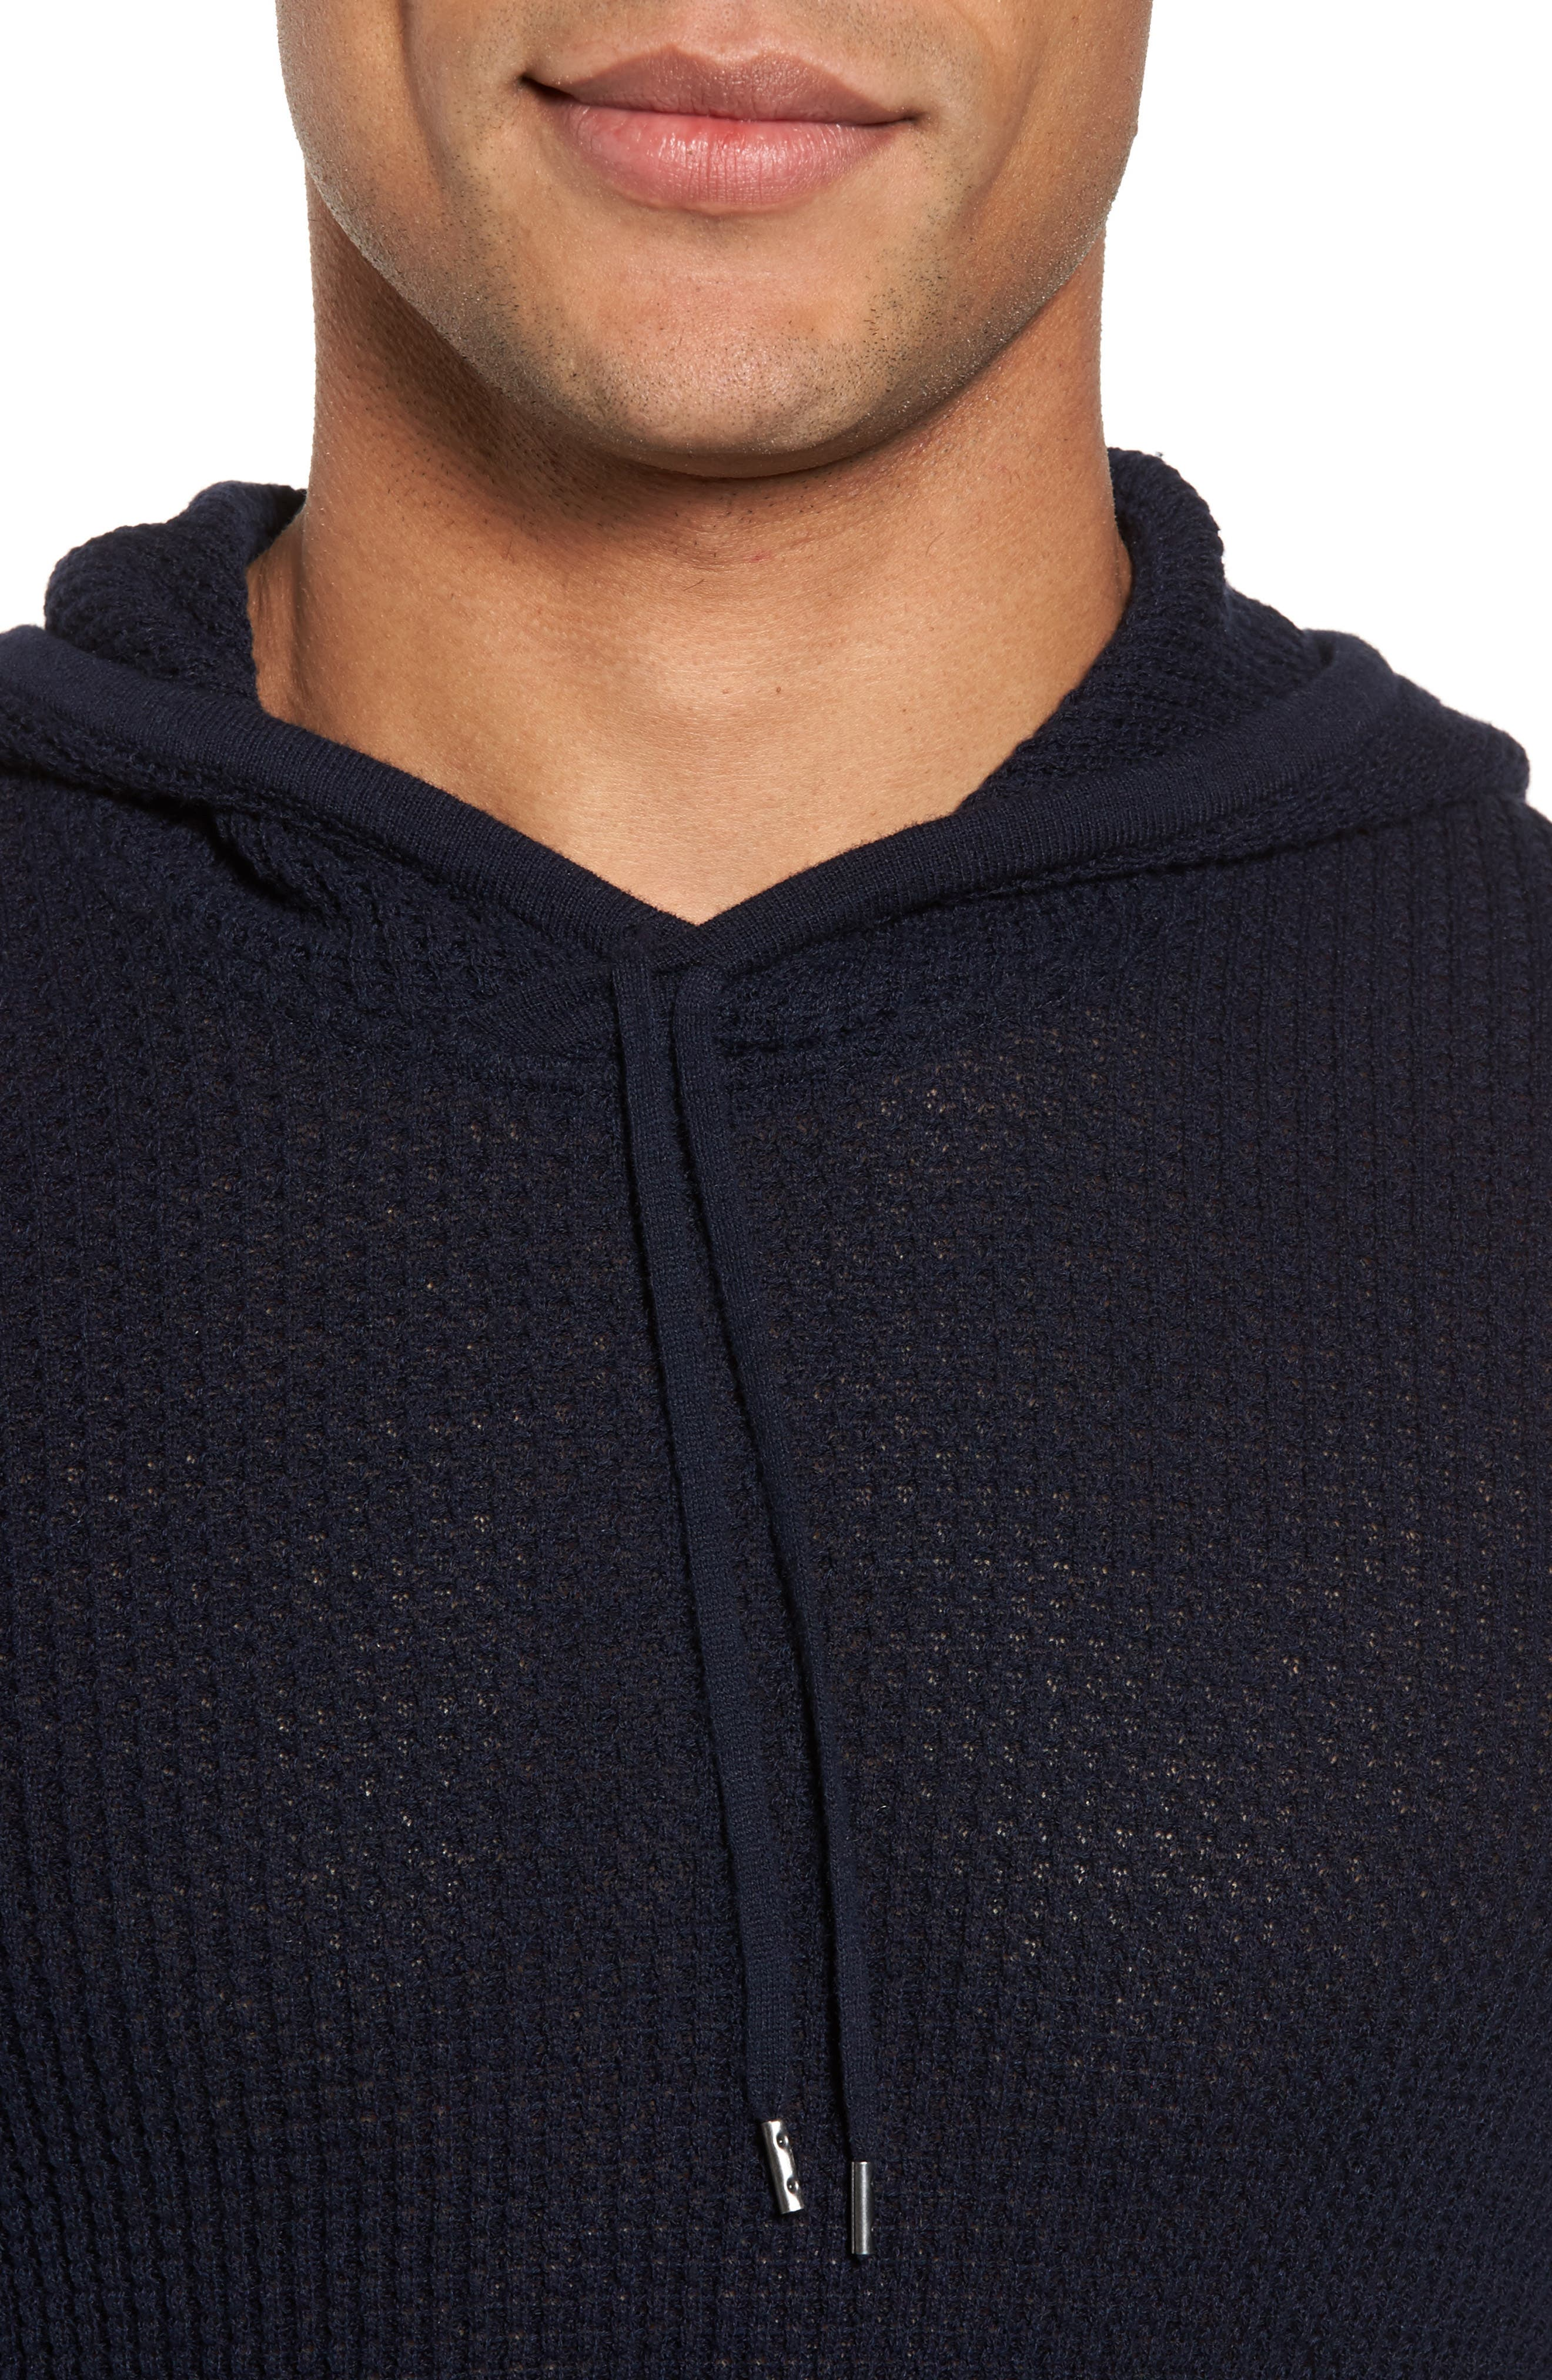 Thermal Pullover Hoodie,                             Alternate thumbnail 7, color,